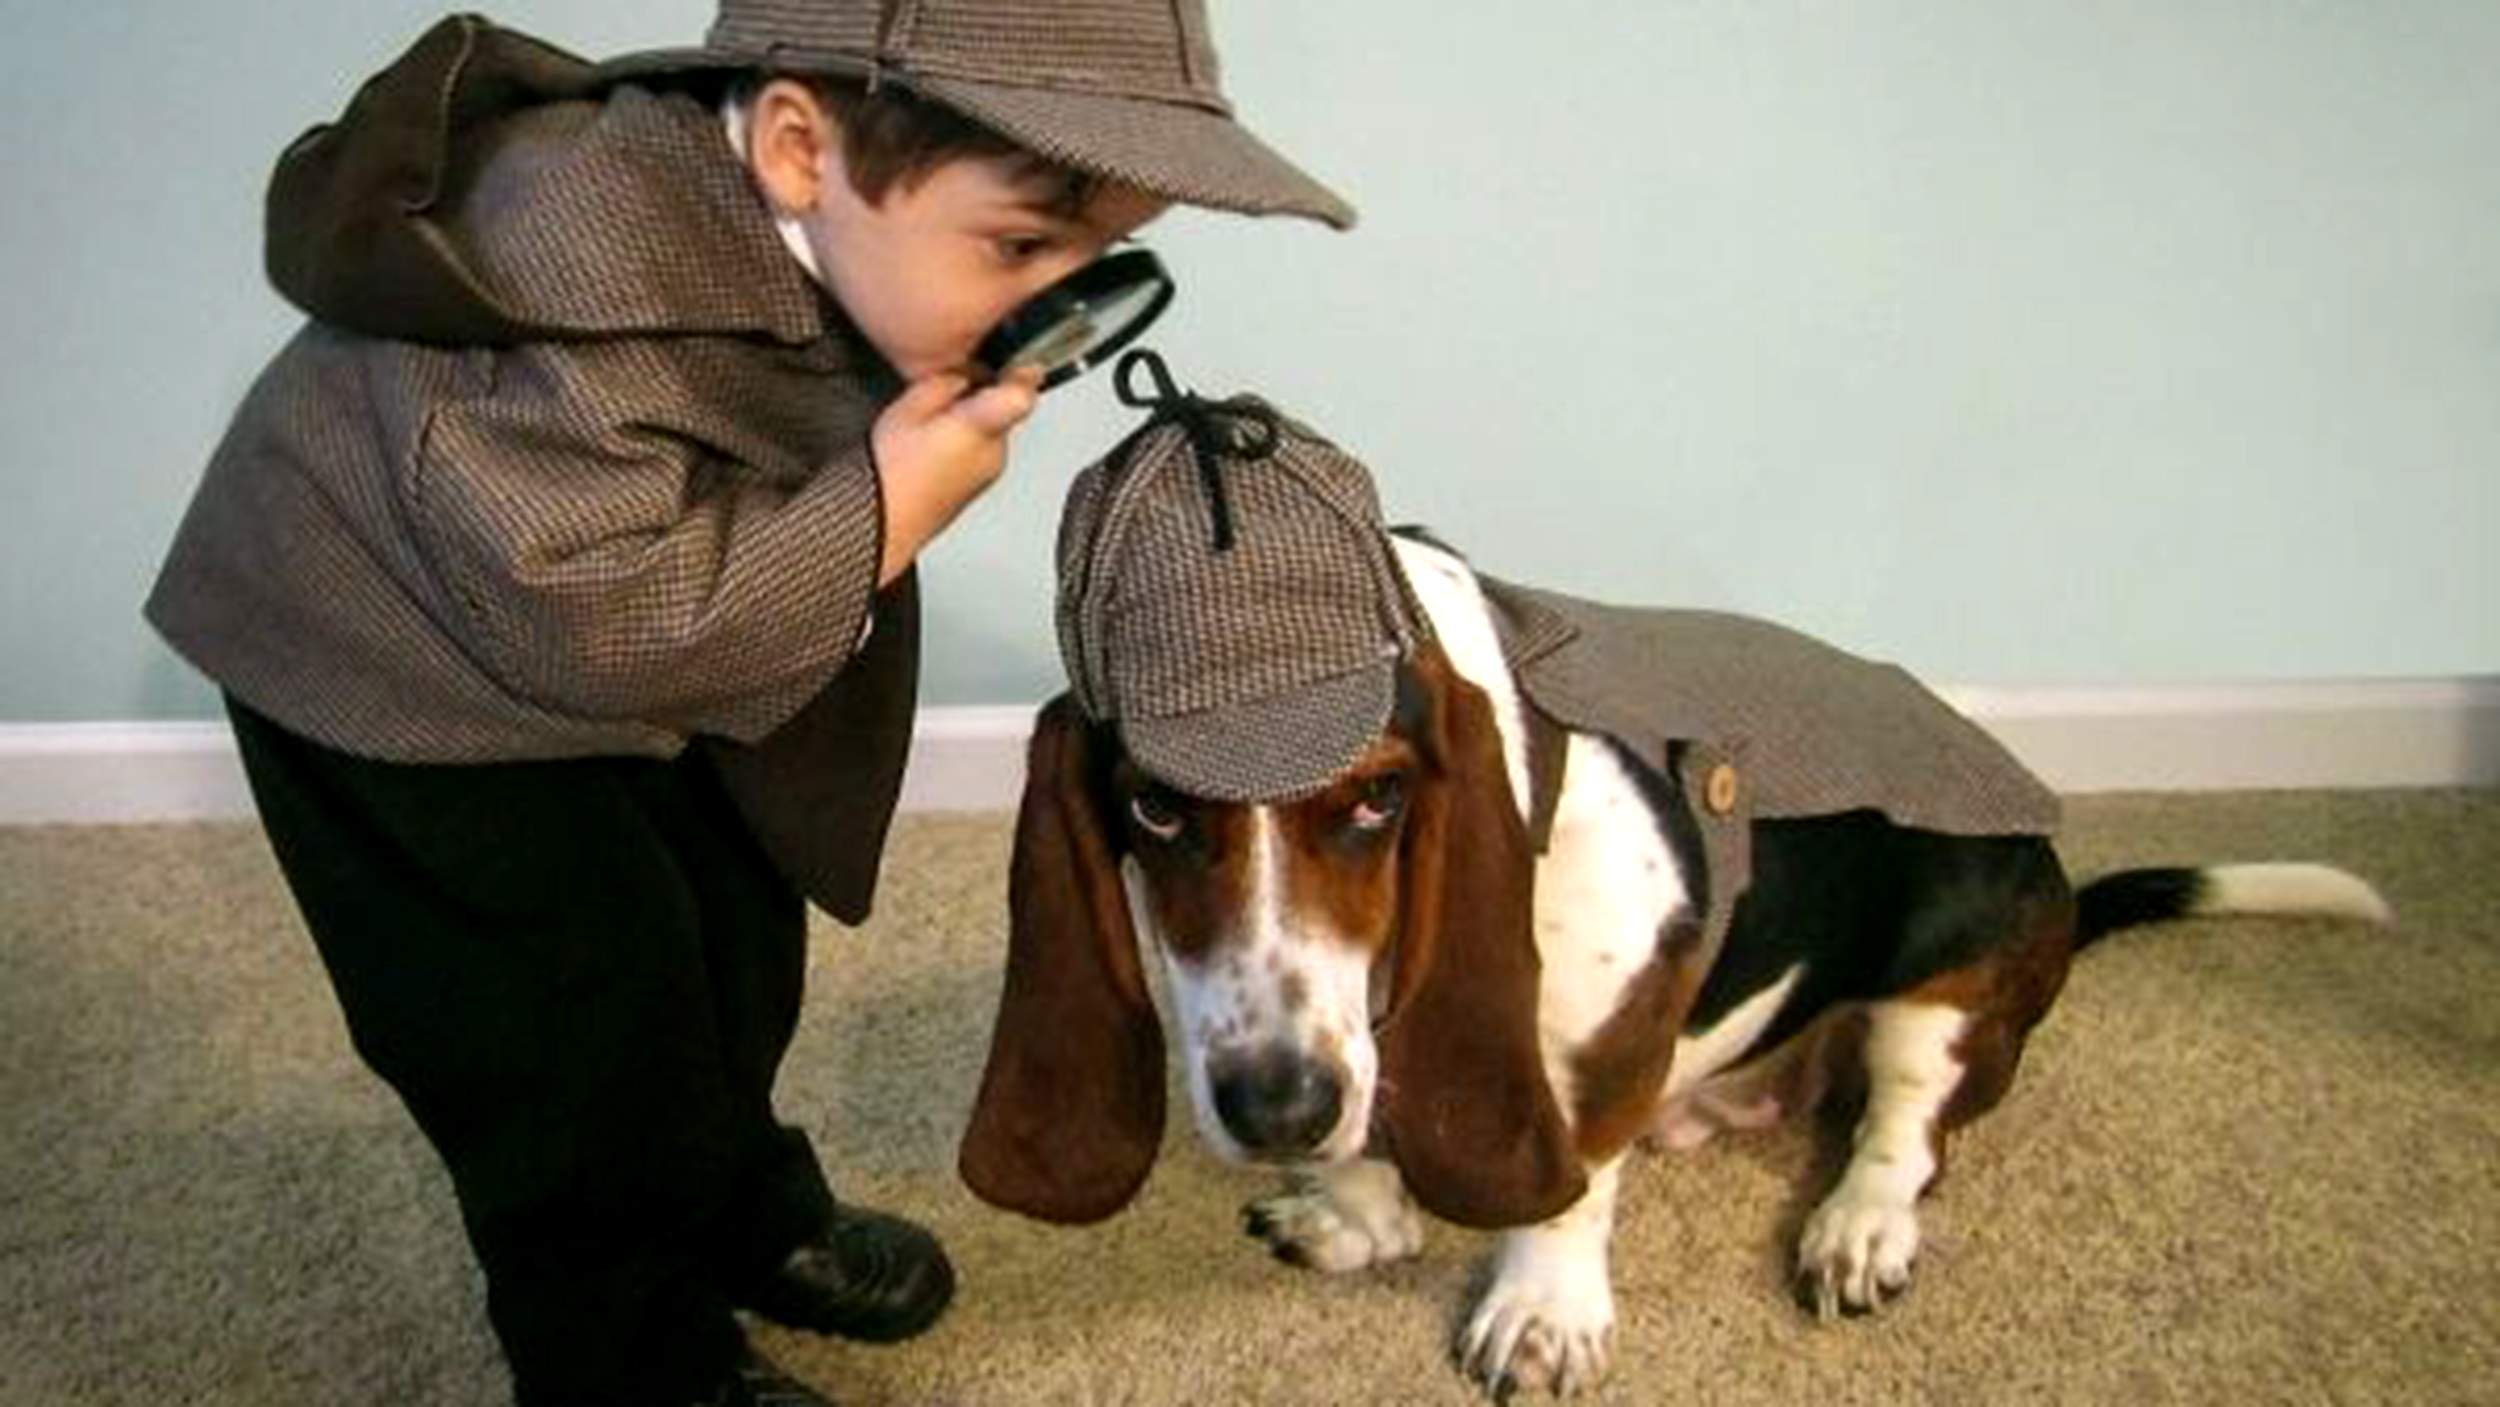 adorable halloween costume ideas for kid and pet duos